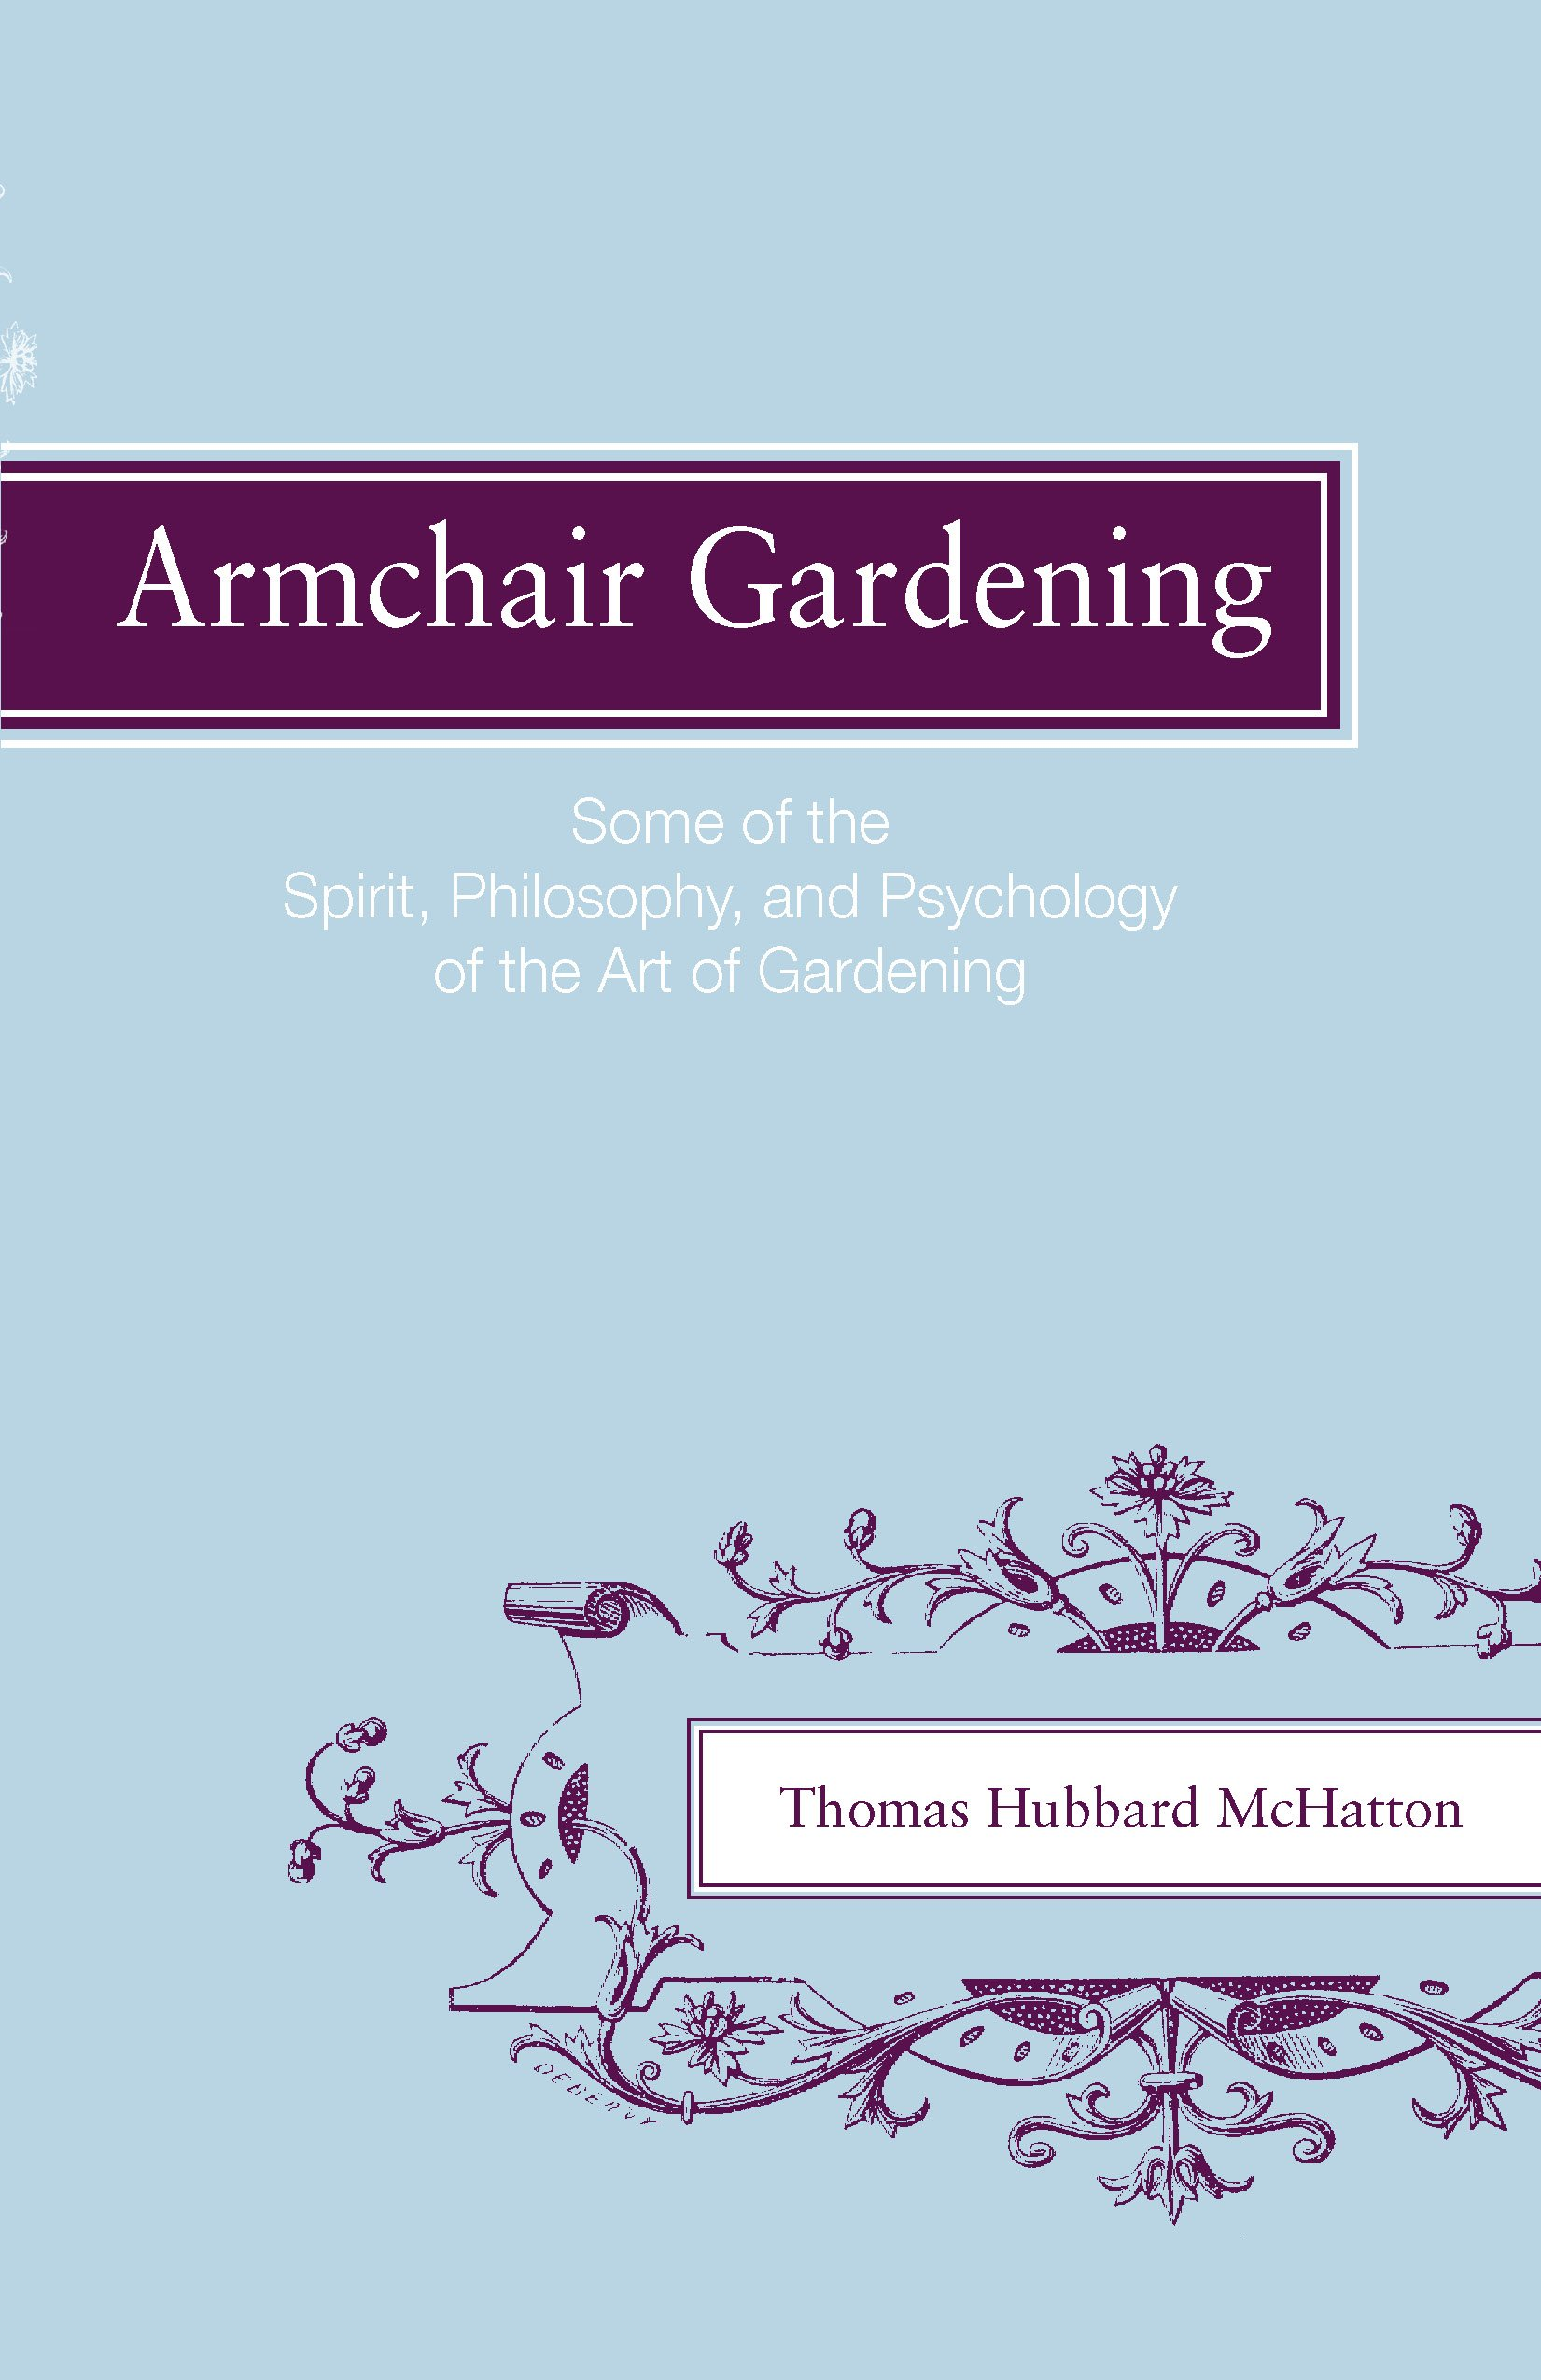 Armchair Gardening: Some Of The Spirit, Philosophy And Psychology Of The  Art Of Gardening: Thomas Hubbard McHatton: 9780820335452: Amazon.com: Books